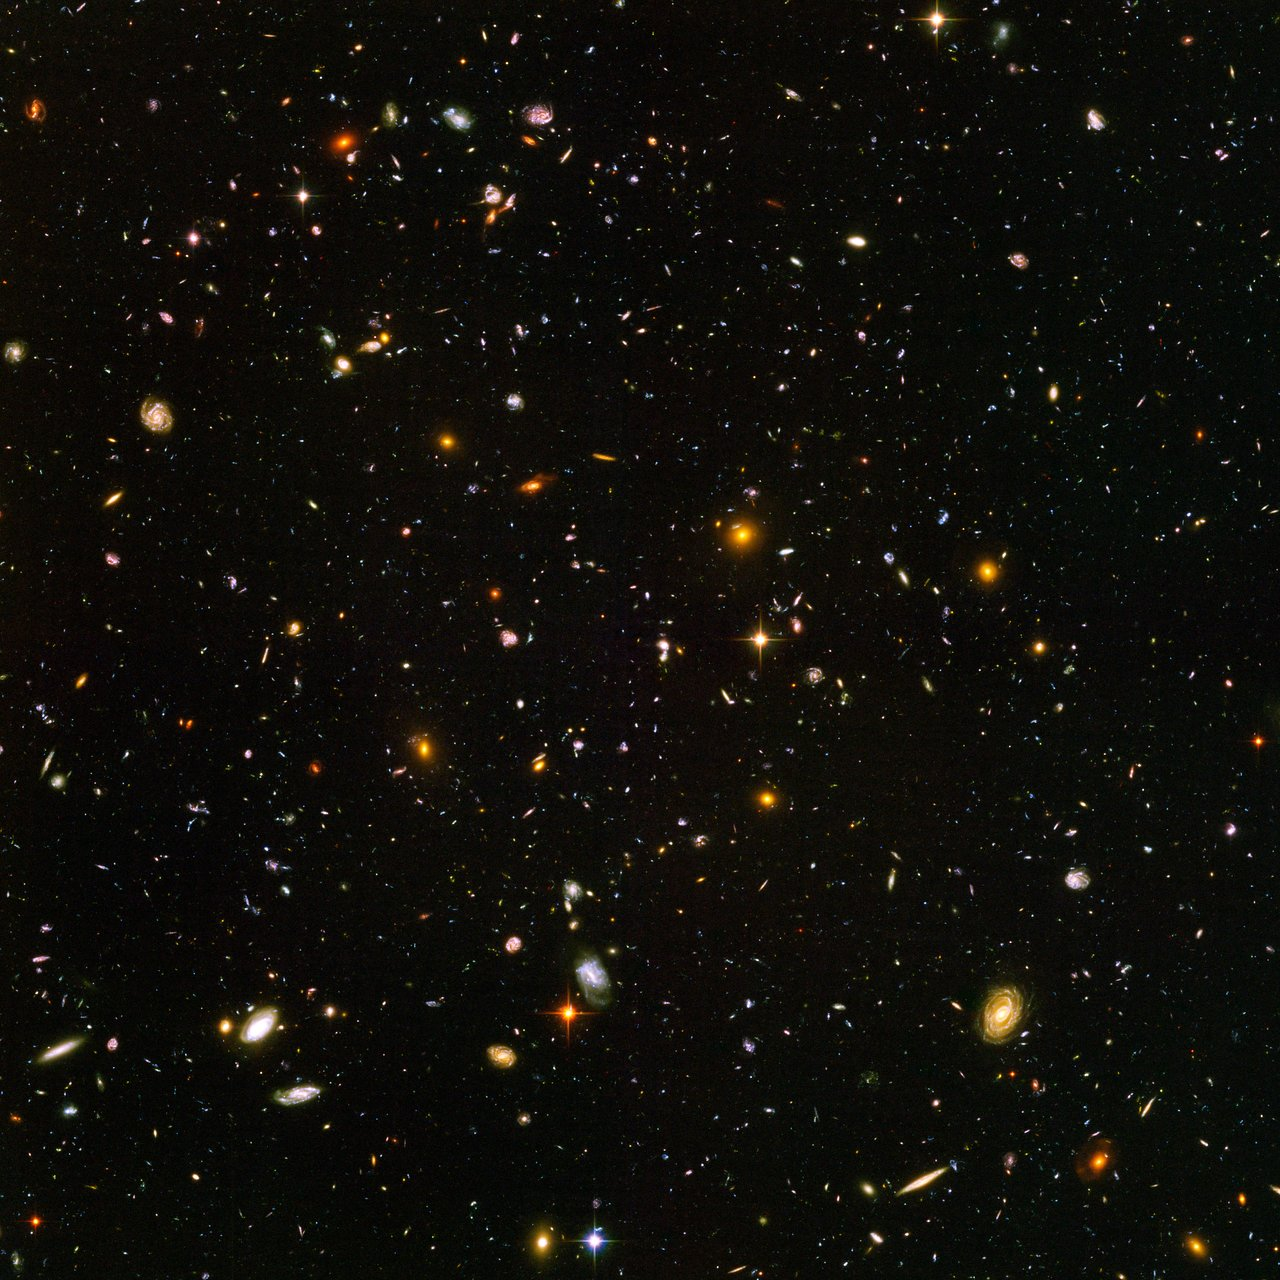 Hubble Ultra Deep Field Esa Hubble